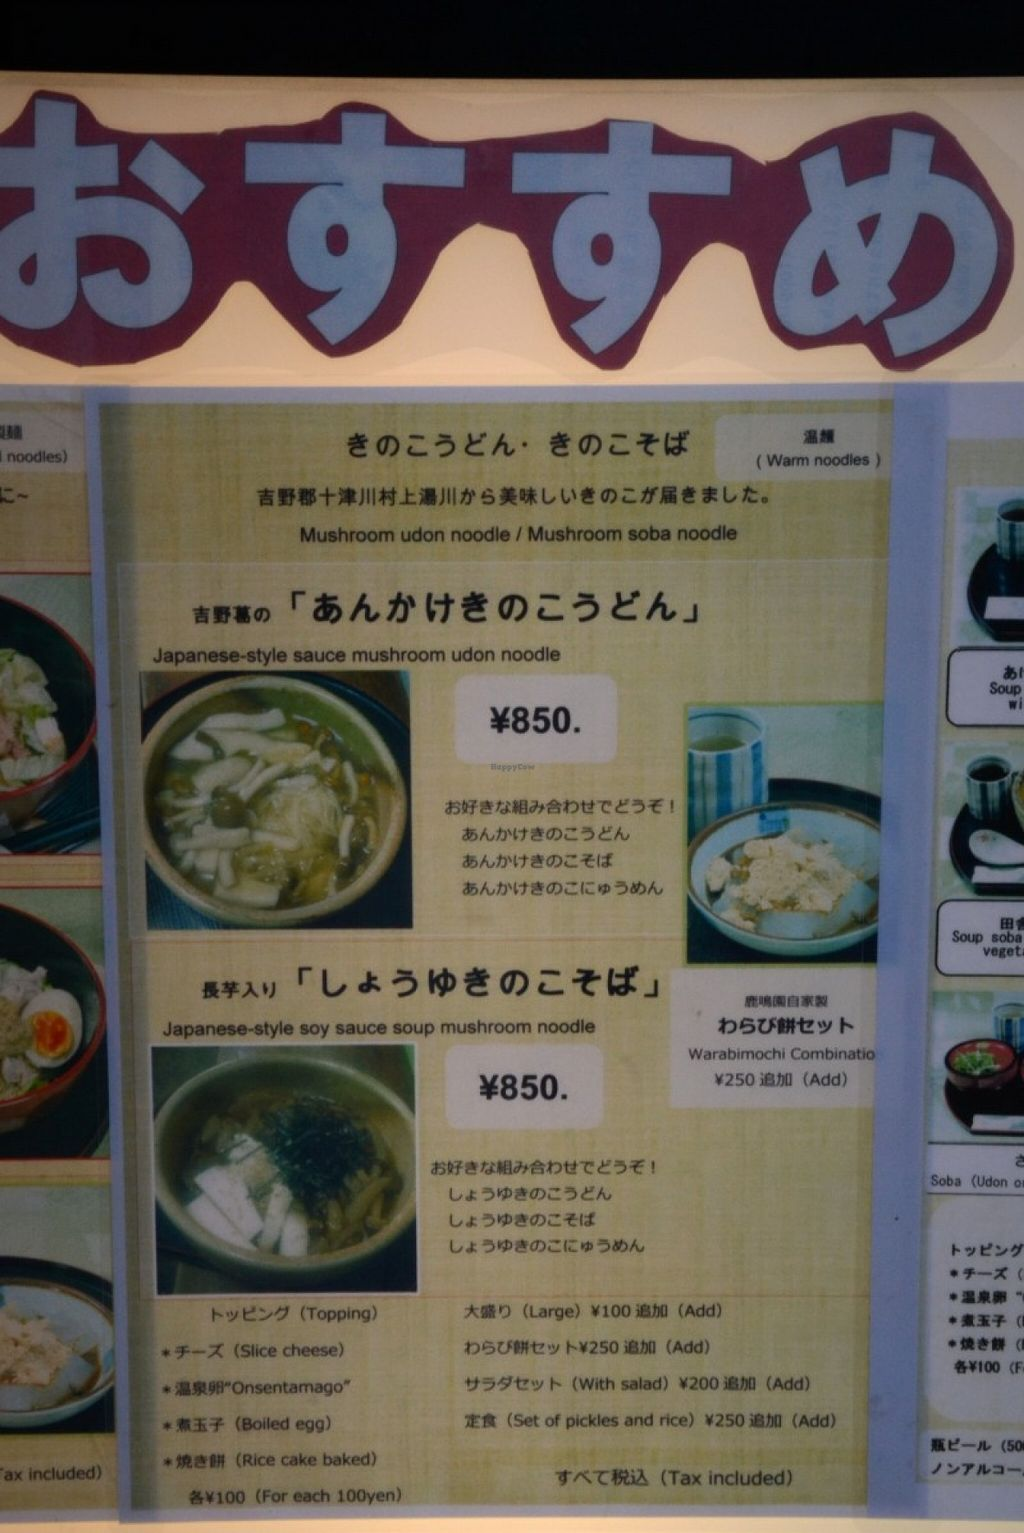 """Photo of Rokumeien  by <a href=""""/members/profile/LaiNamKhim"""">LaiNamKhim</a> <br/>The mushroom soba/udon that were also on the menu. Unclear if fish stock is used. If fish stock doesn't bother you, then it is vegetarian enough <br/> October 28, 2015  - <a href='/contact/abuse/image/65065/122957'>Report</a>"""